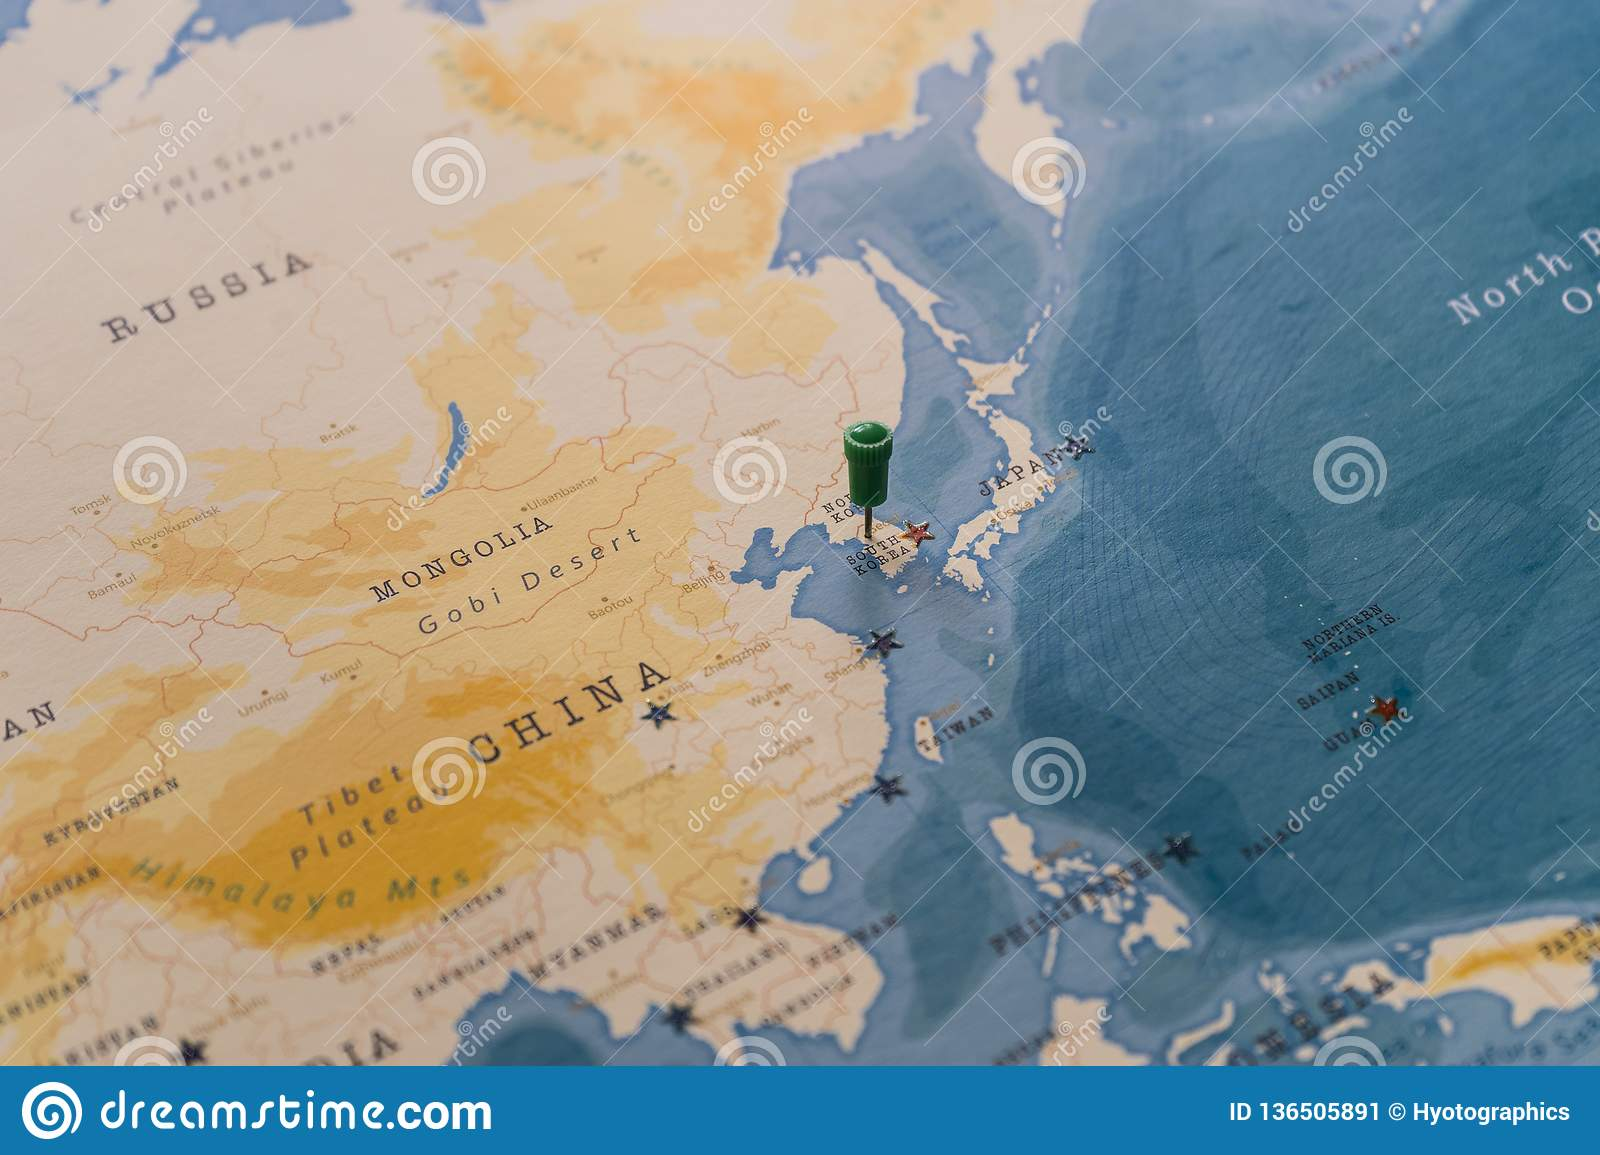 Image of: A Pin On Seoul South Korea In The World Map Stock Image Image Of Geography Globe 136505891